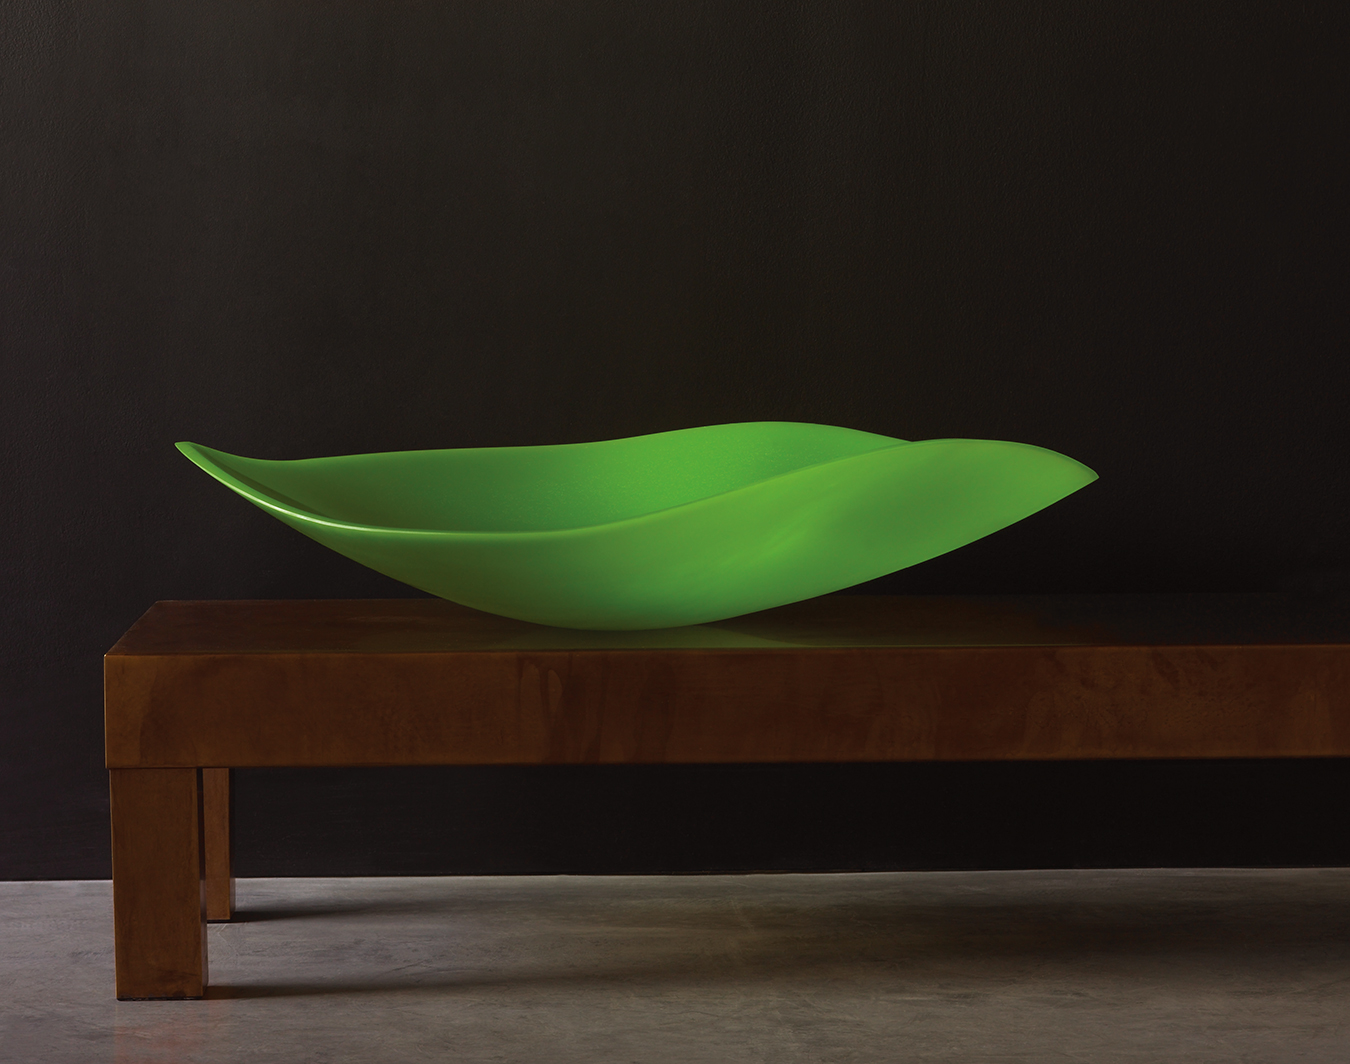 NUVO Magazine: The Sculptural Approach Of Martha Sturdy